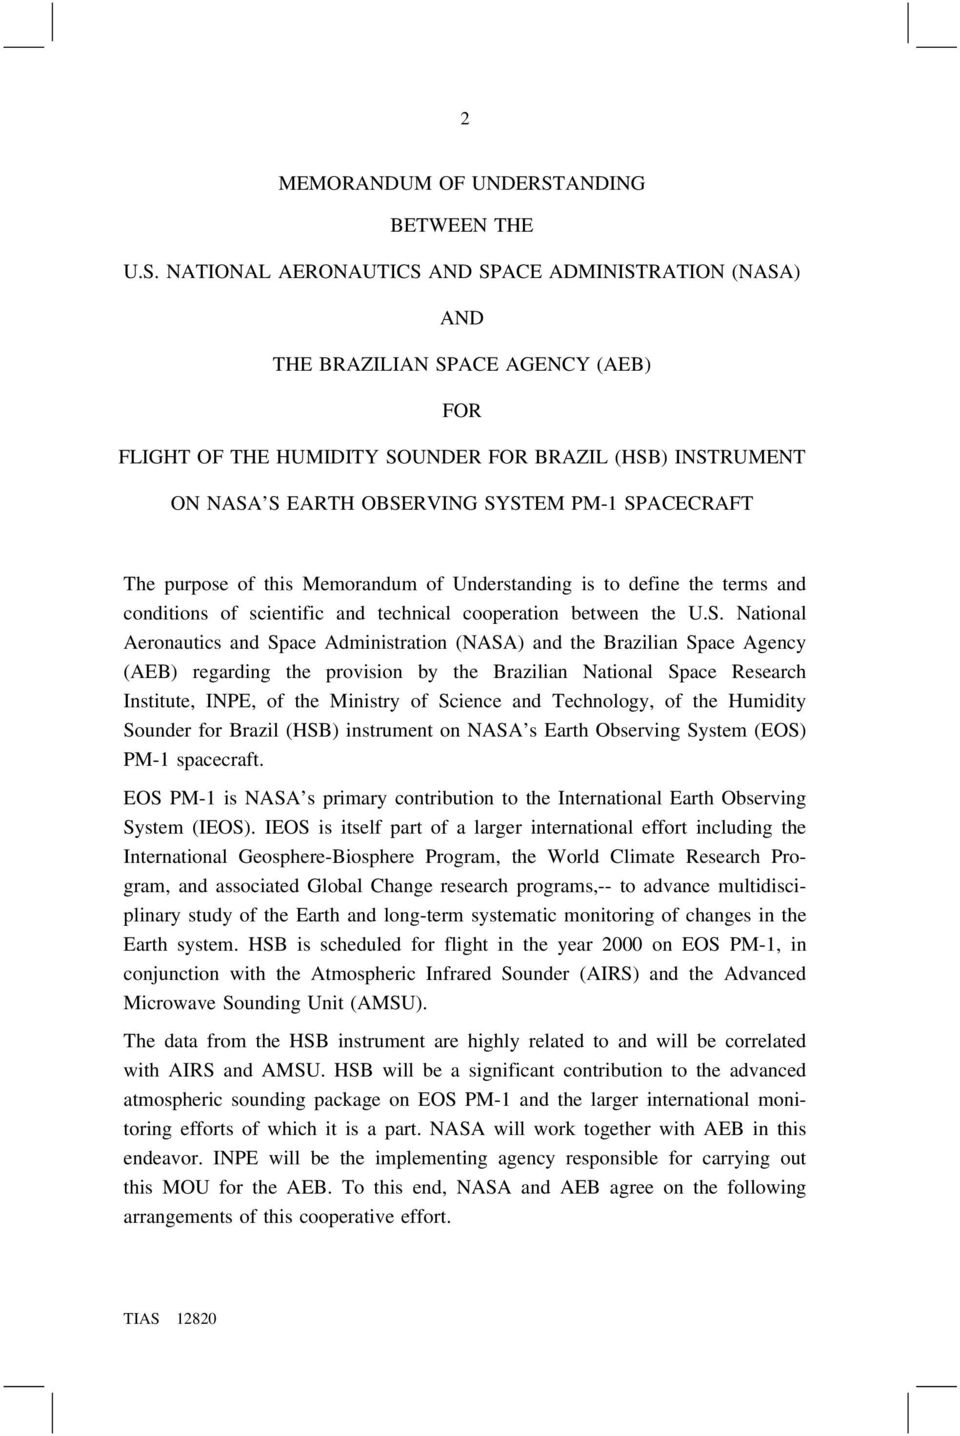 NATIONAL AERONAUTICS AND SPACE ADMINISTRATION (NASA) AND THE BRAZILIAN SPACE AGENCY (AEB) FOR FLIGHT OF THE HUMIDITY SOUNDER FOR BRAZIL (HSB) INSTRUMENT ON NASA S EARTH OBSERVING SYSTEM PM-1